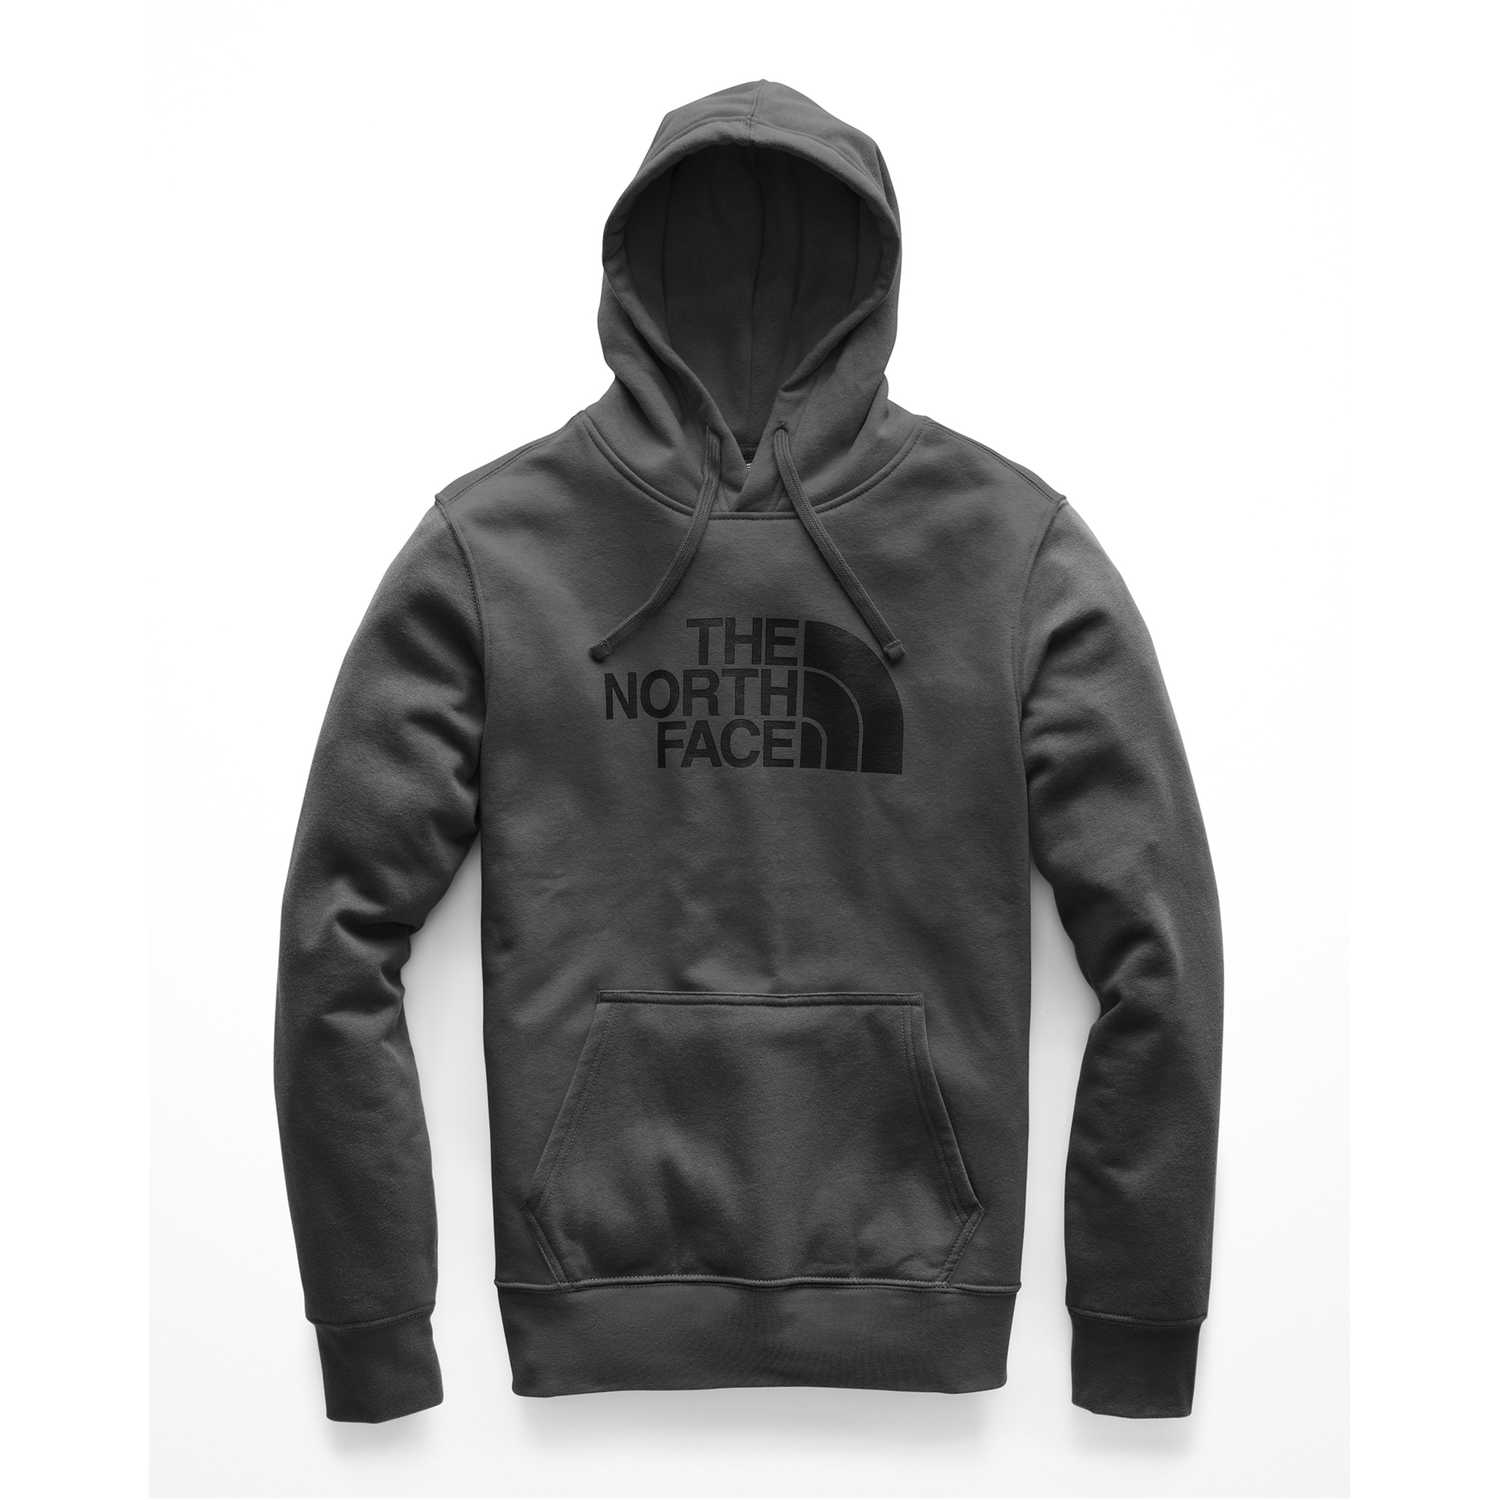 Casual de Hombre The North Face Plomo / negro m half dome pullover hoodie